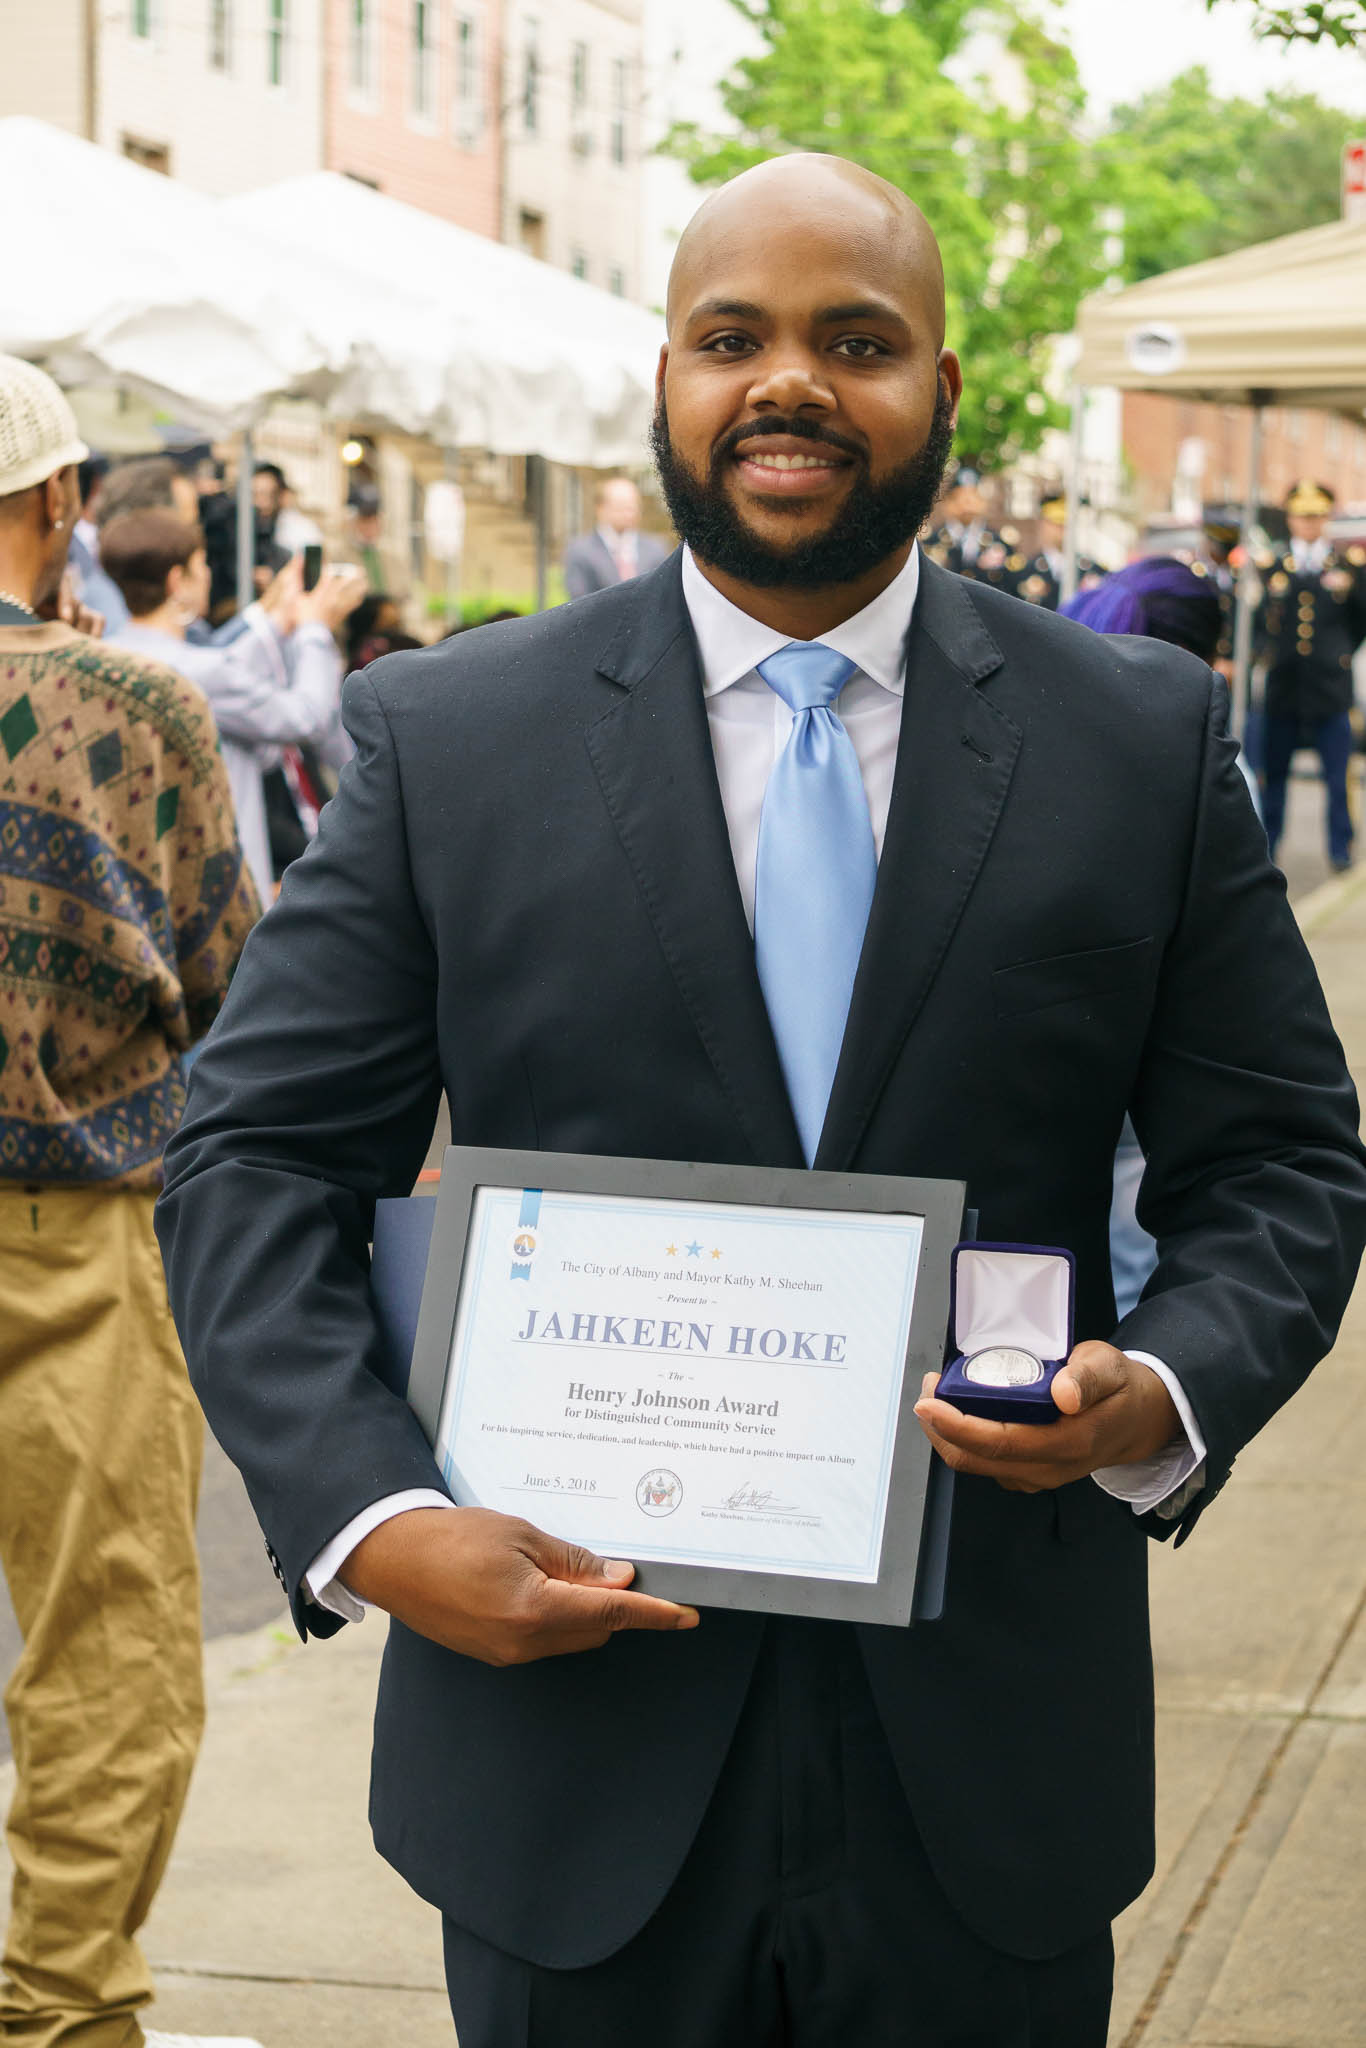 "Jahkeen Hoke, winner of the second annual Henry Johnson Award for Distinguished Community Service, received a silver commemorative Sgt. Henry Johnson medal along with a certificate and a monetary reward. See:  ""Albany marks 2nd Annual Henry Johnson Day,""  Times Union,  June 5, 2018."